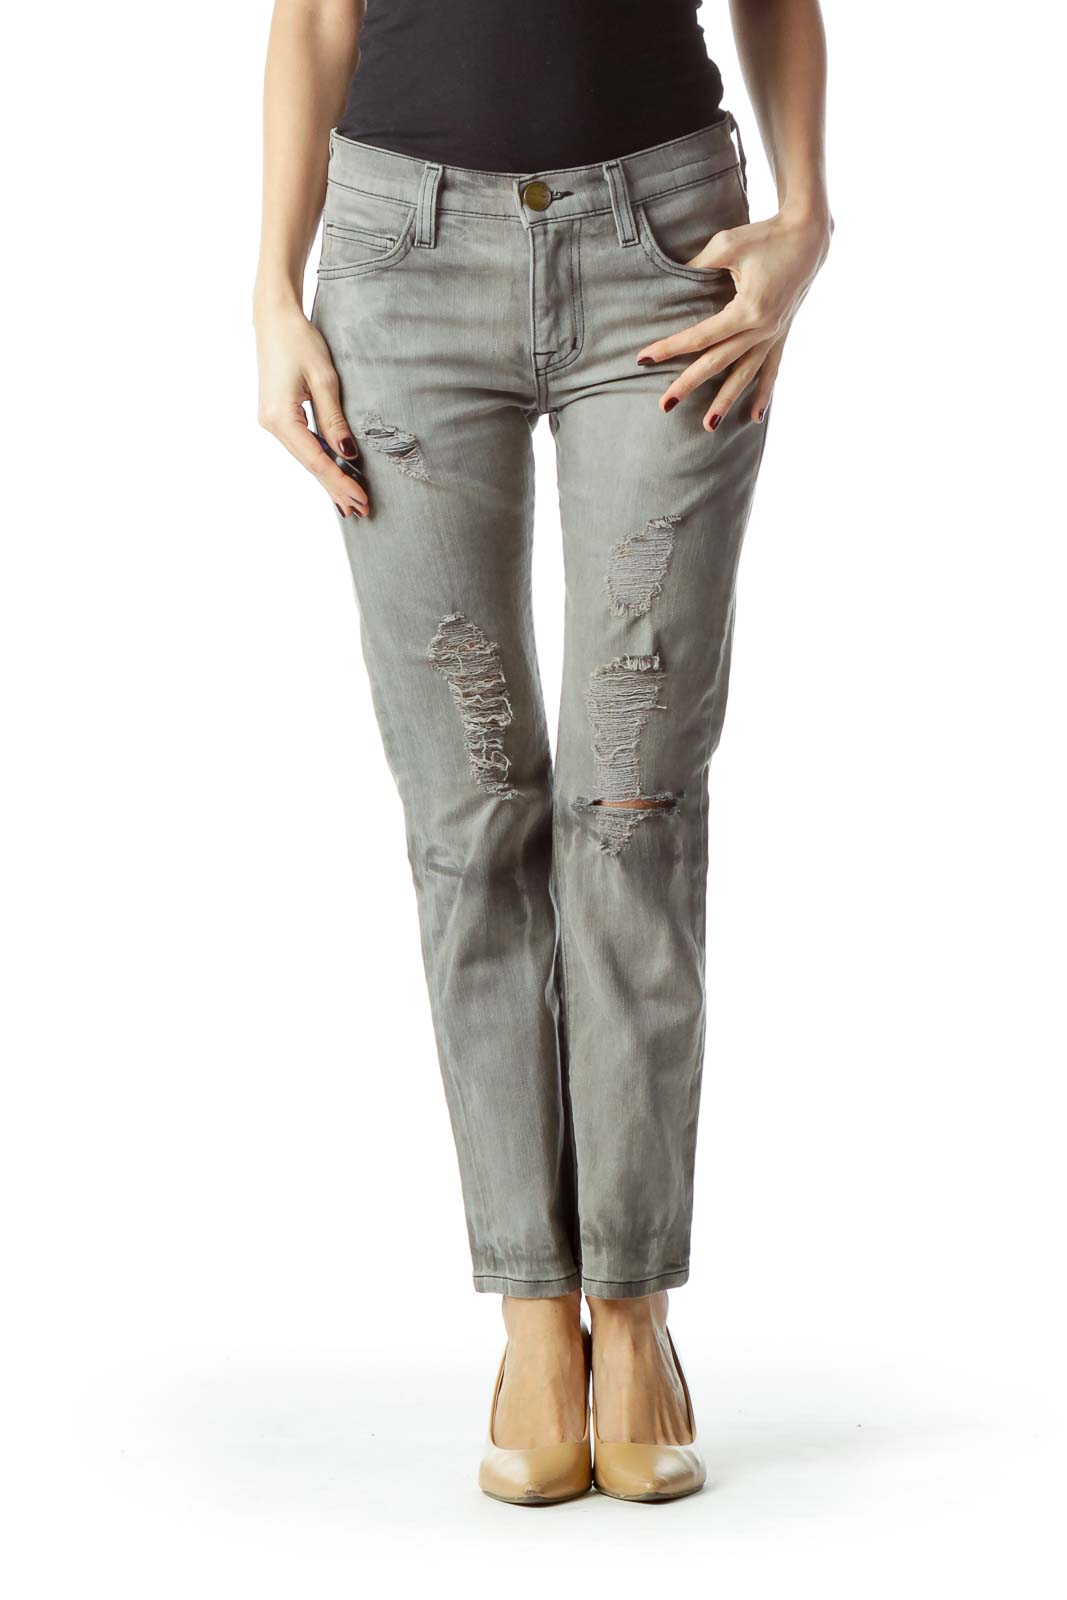 Gray Light-Wash Distressed Skinny Denim Jeans